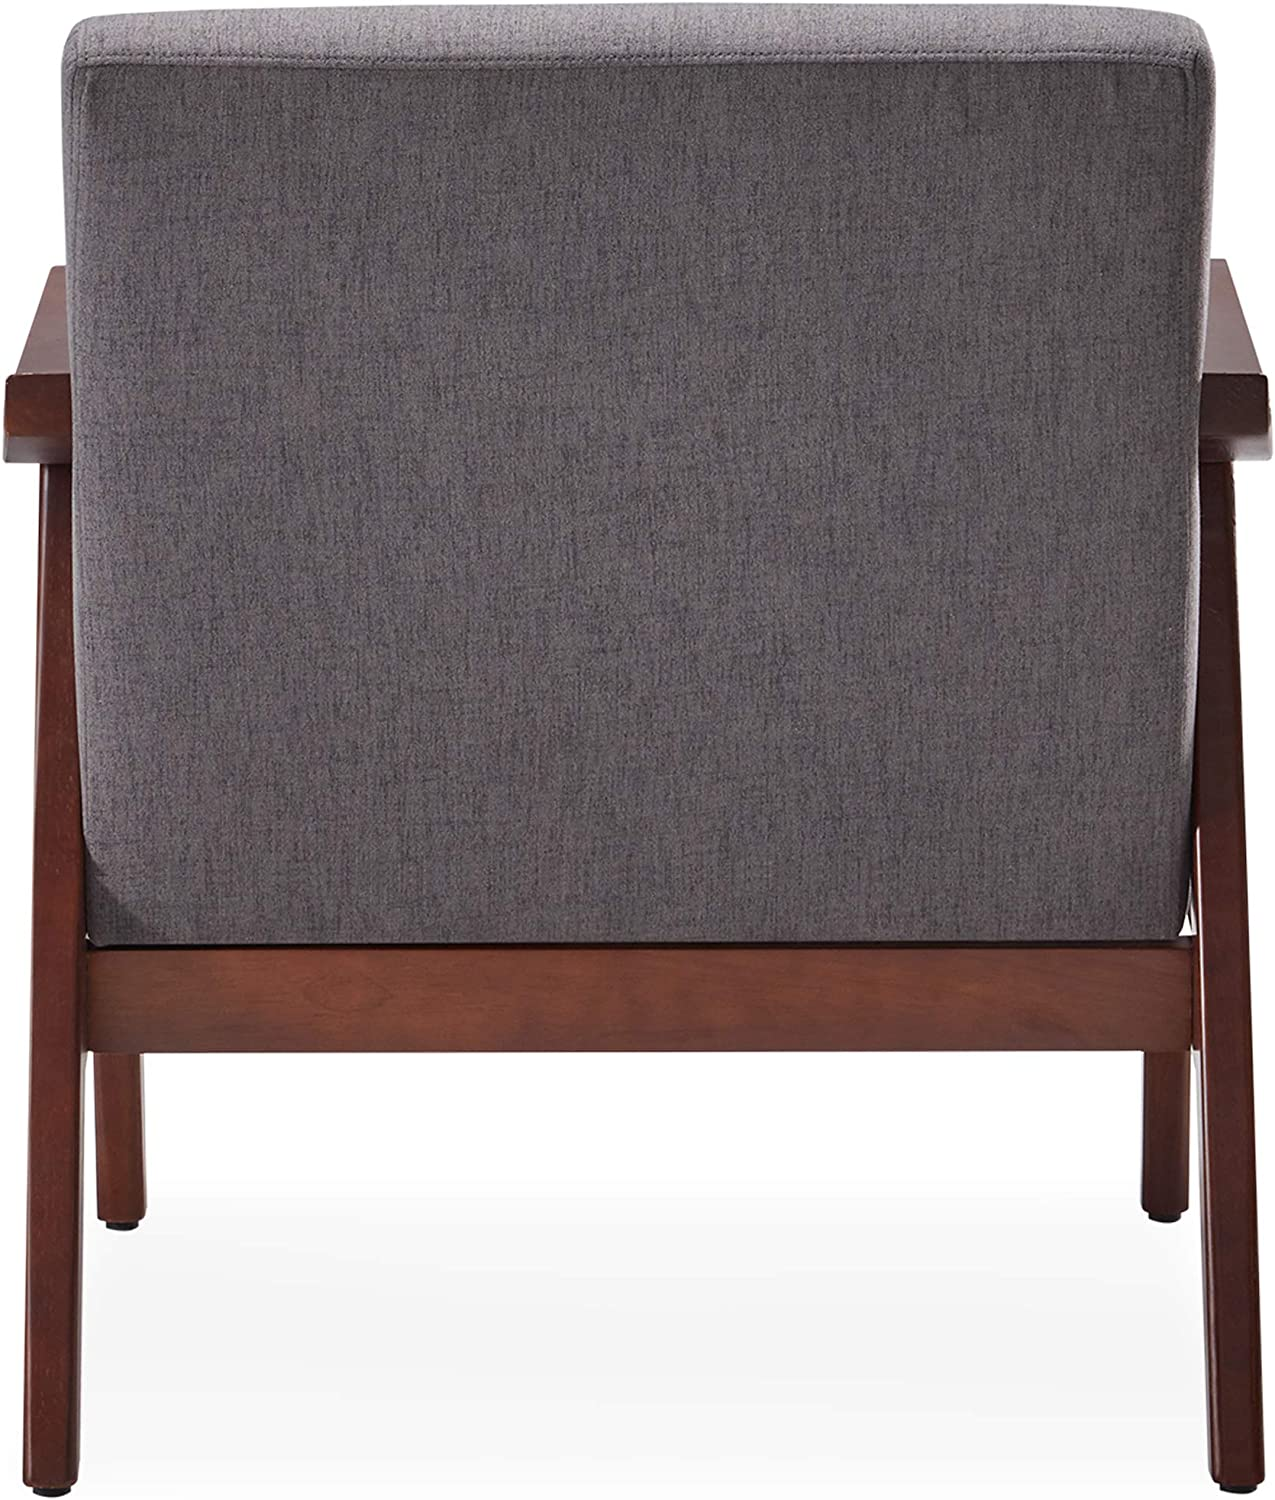 BELLEZE Mid-Century Modern Accent Chair Living Room Upholstered Linen Armchair with Wood Legs, Grey